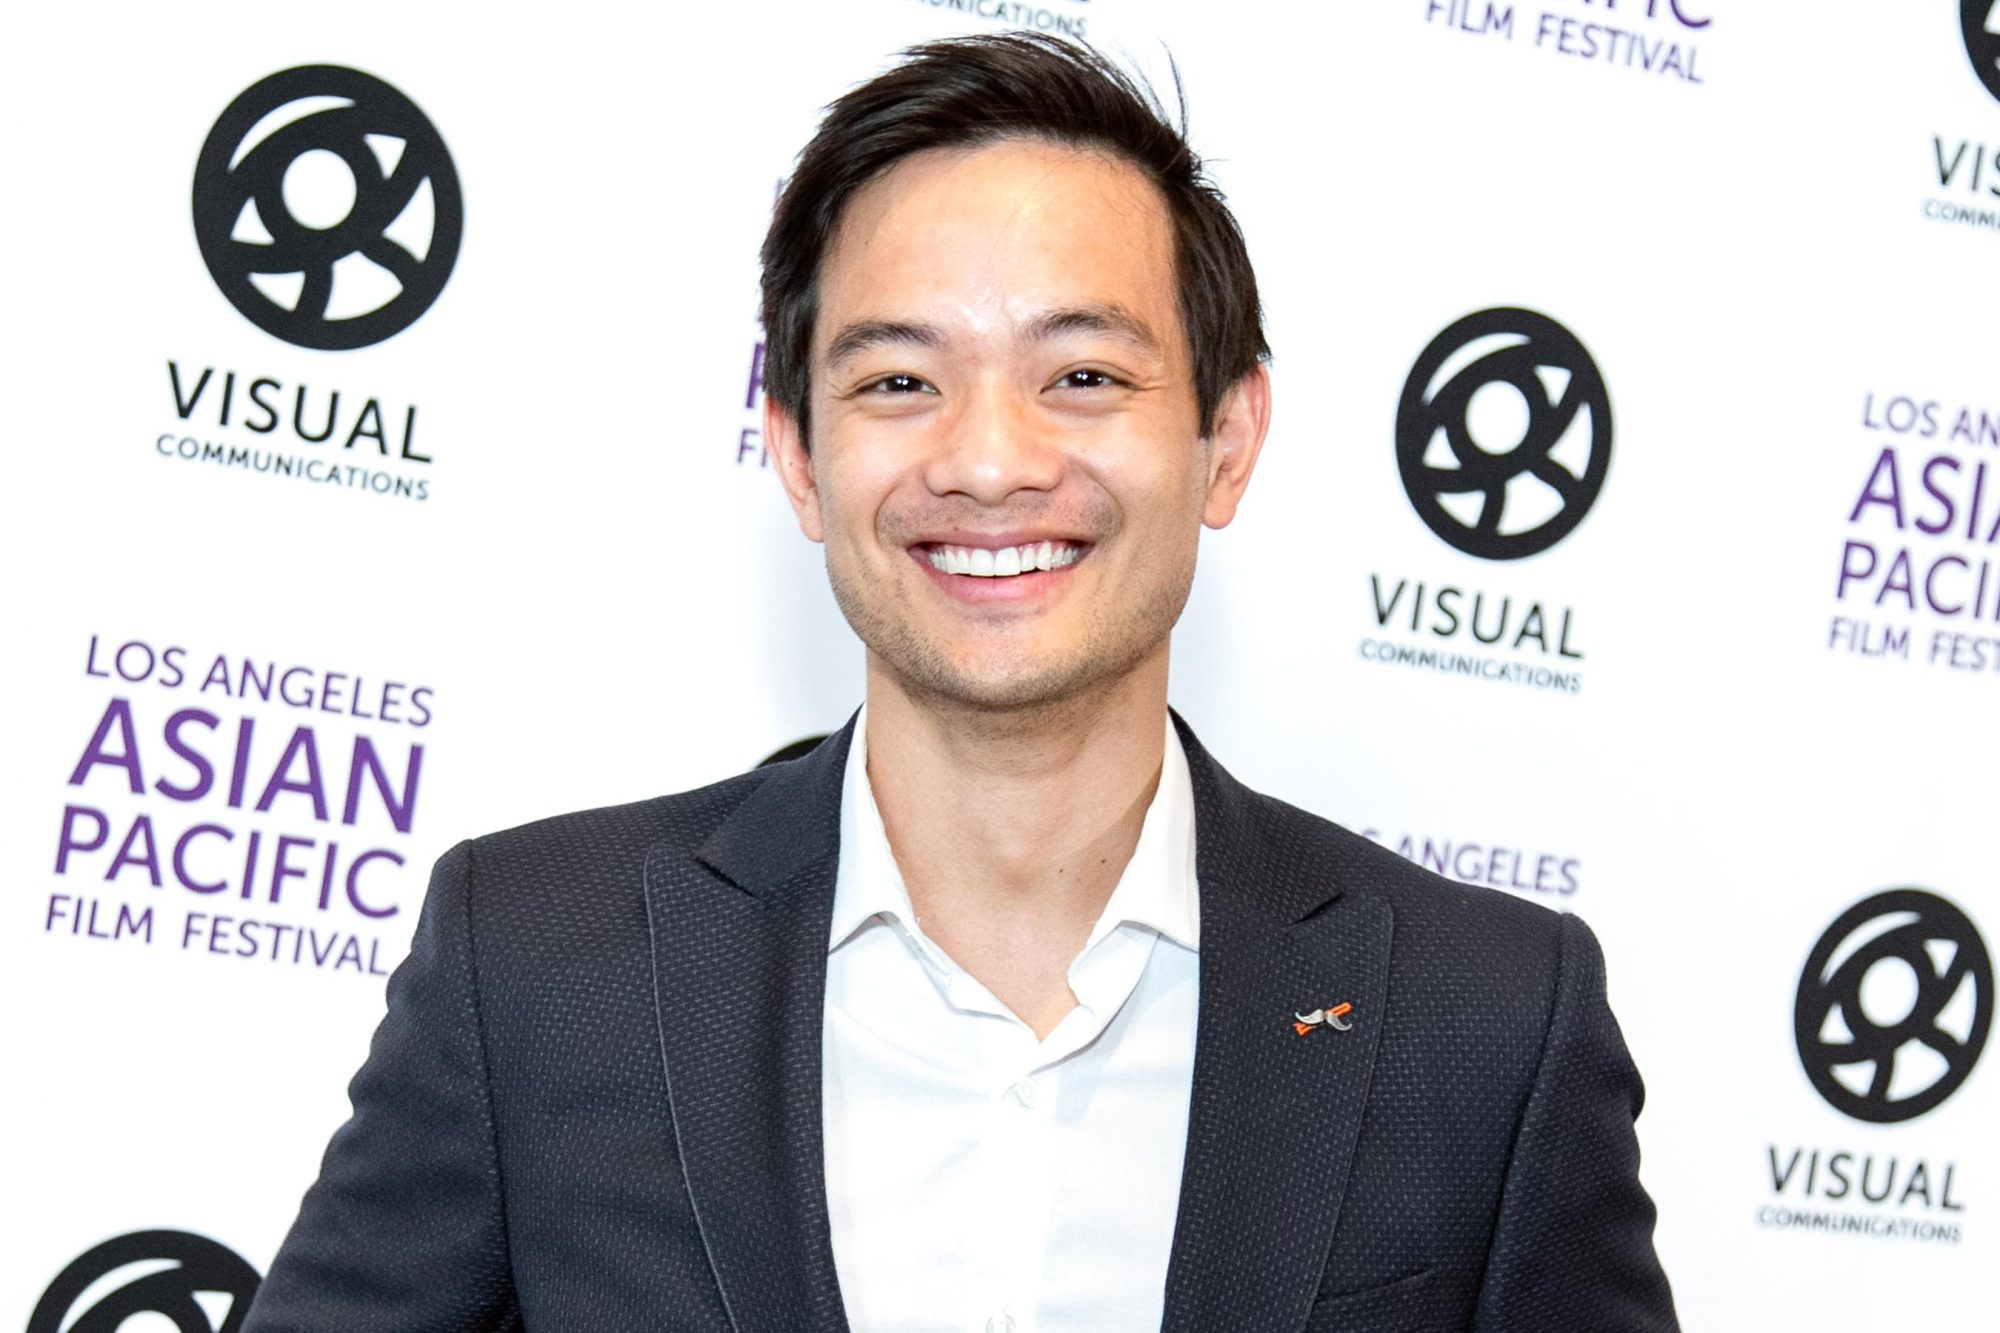 LOS ANGELES, CALIFORNIA - MAY 10: Osric Chau arrives at the closing night for The 2019 Los Angeles Asian Pacific Film Festival at Regal Cinemas L.A. Live on May 10, 2019 in Los Angeles, California. (Photo by John Wolfsohn/Getty Images)